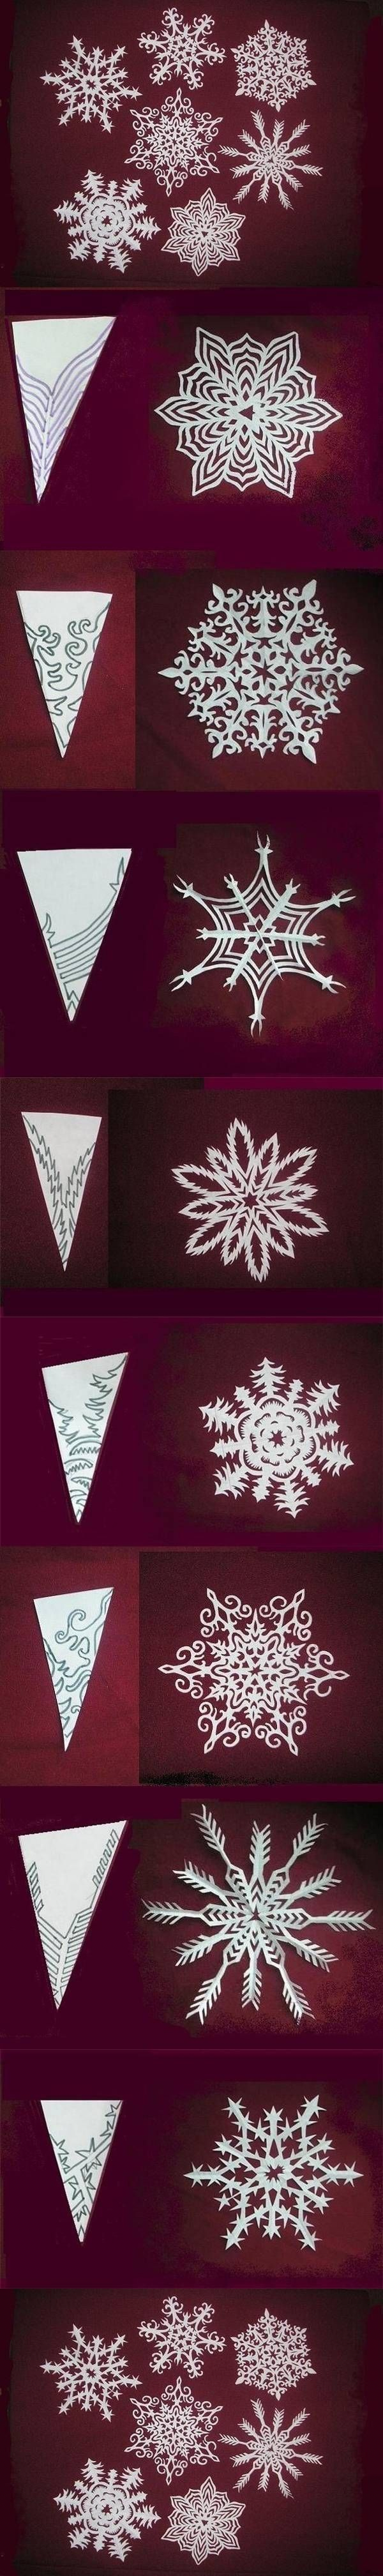 DIY Snowflakes Paper Pattern Tutorial via usefuldiy.com